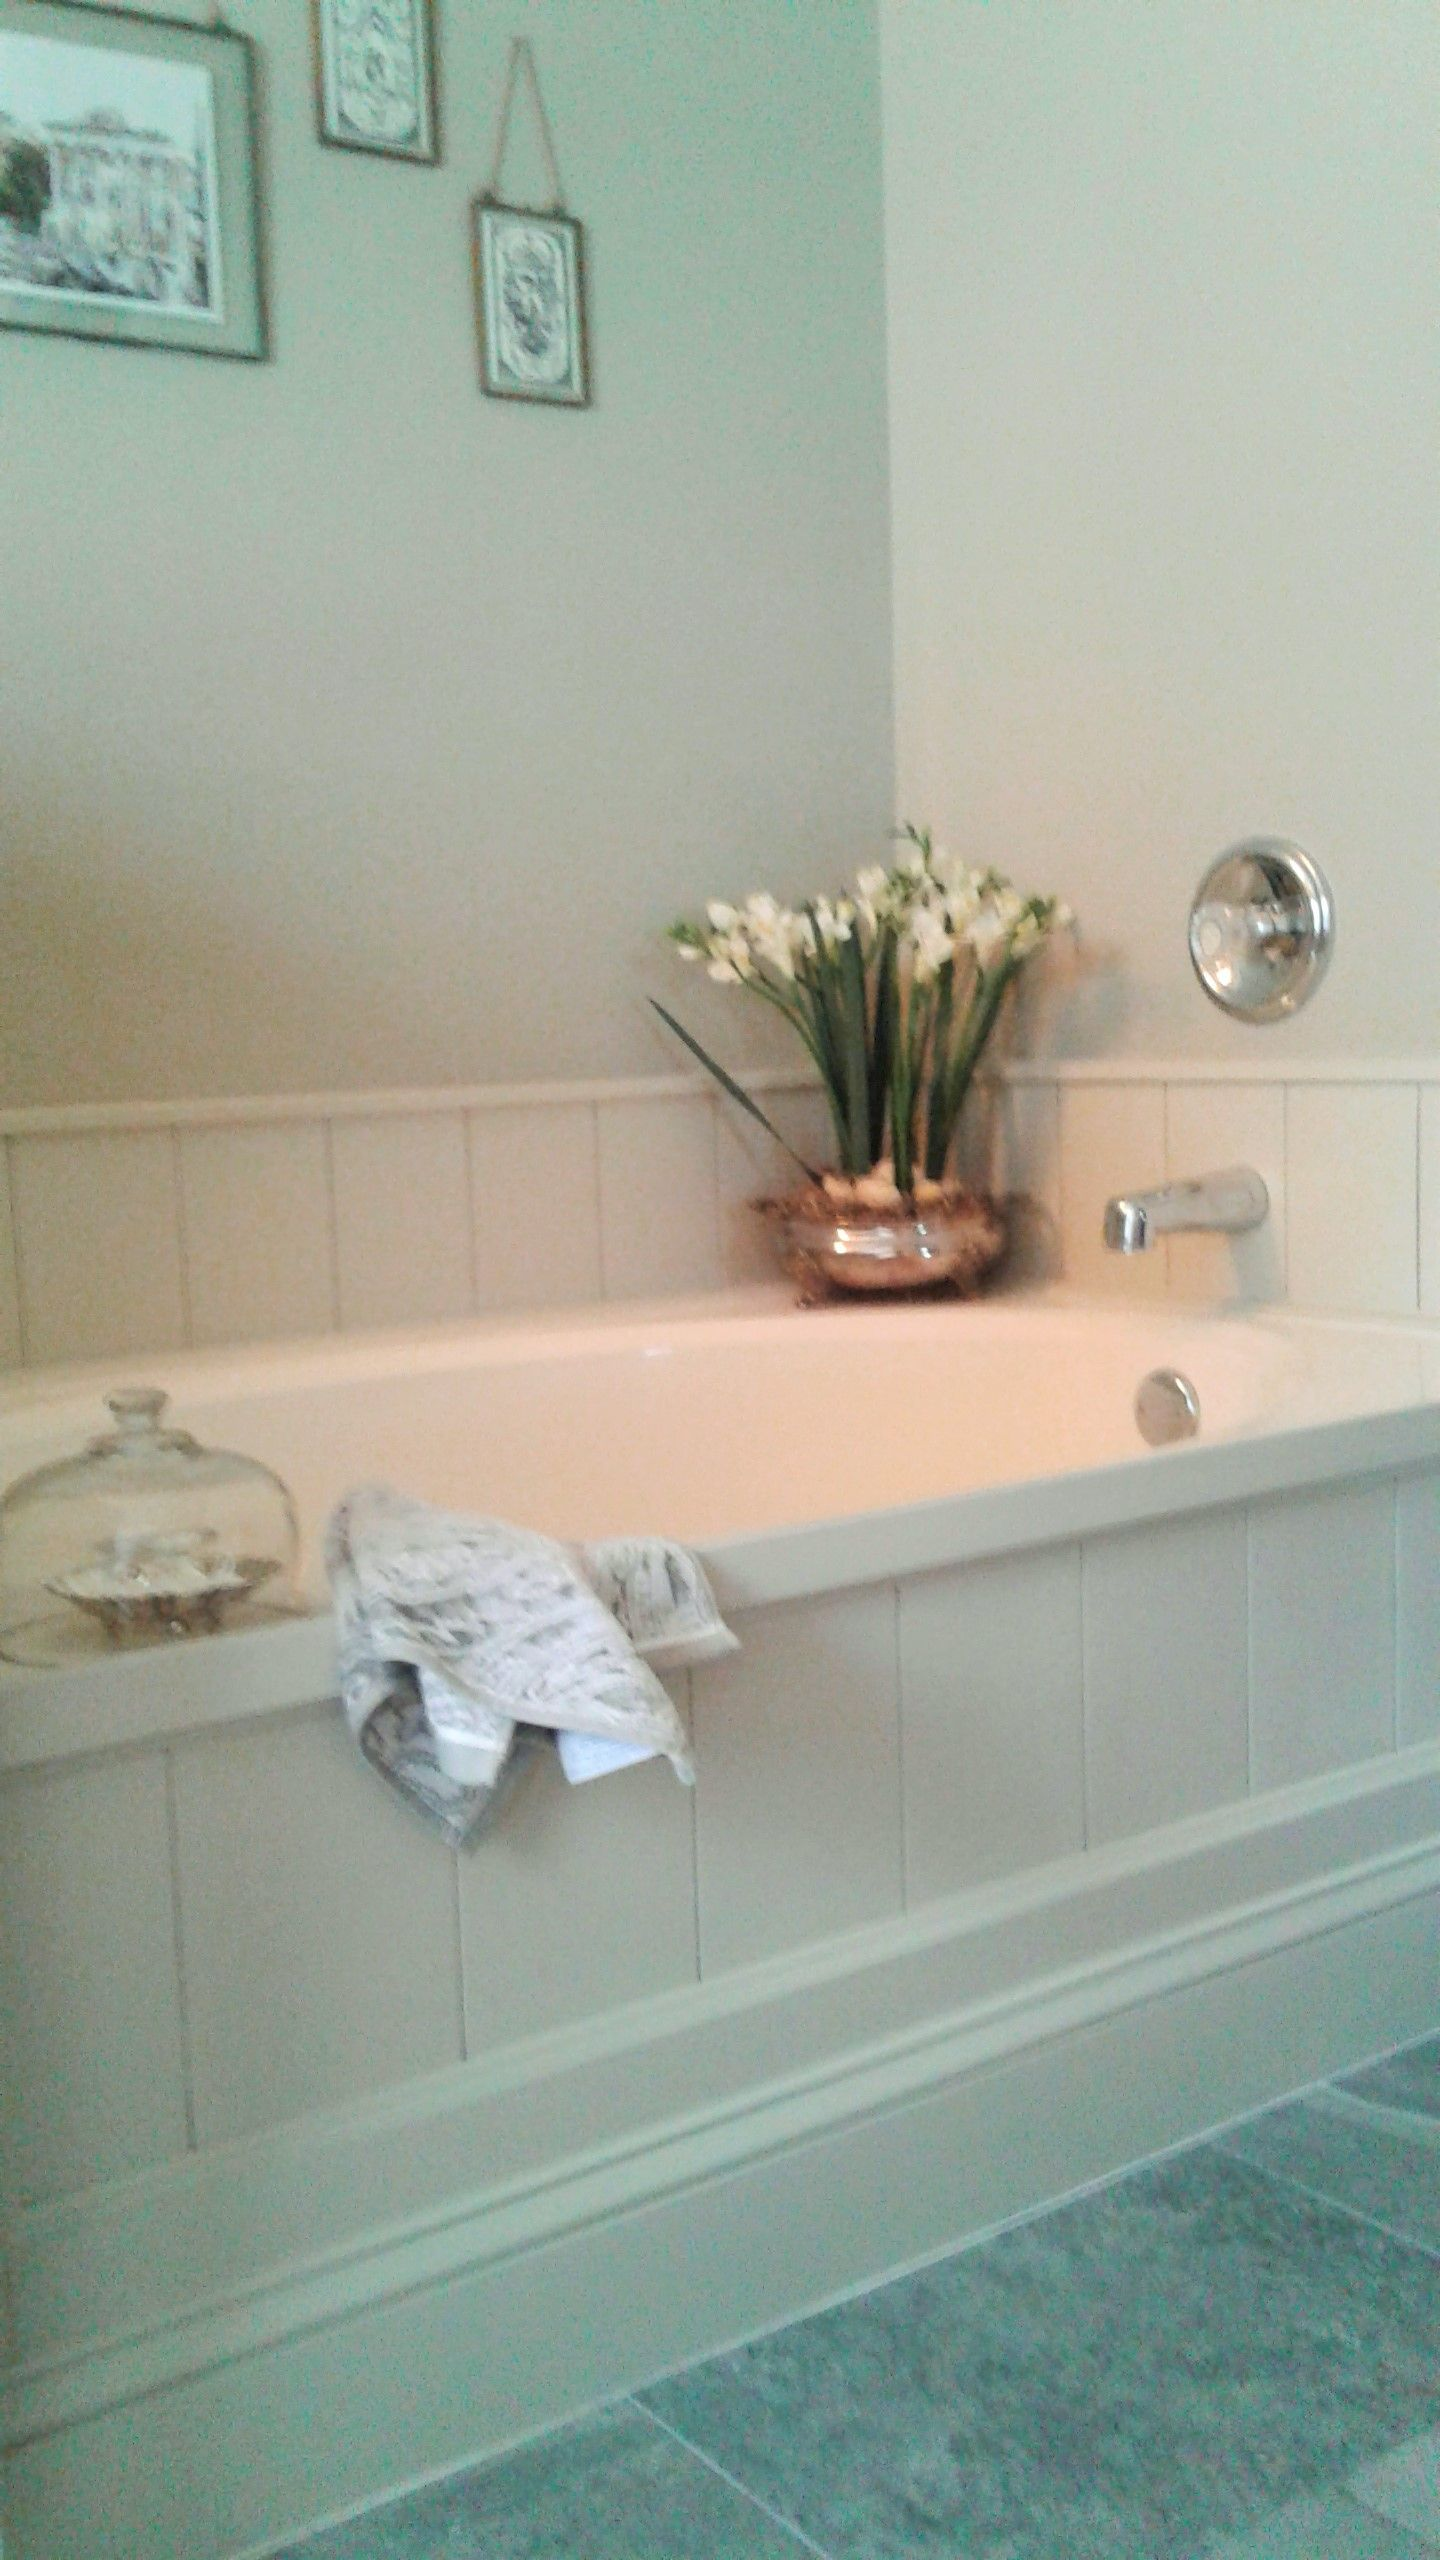 DIY tub surround using peel and stick vinyl planks to create shiplap ...